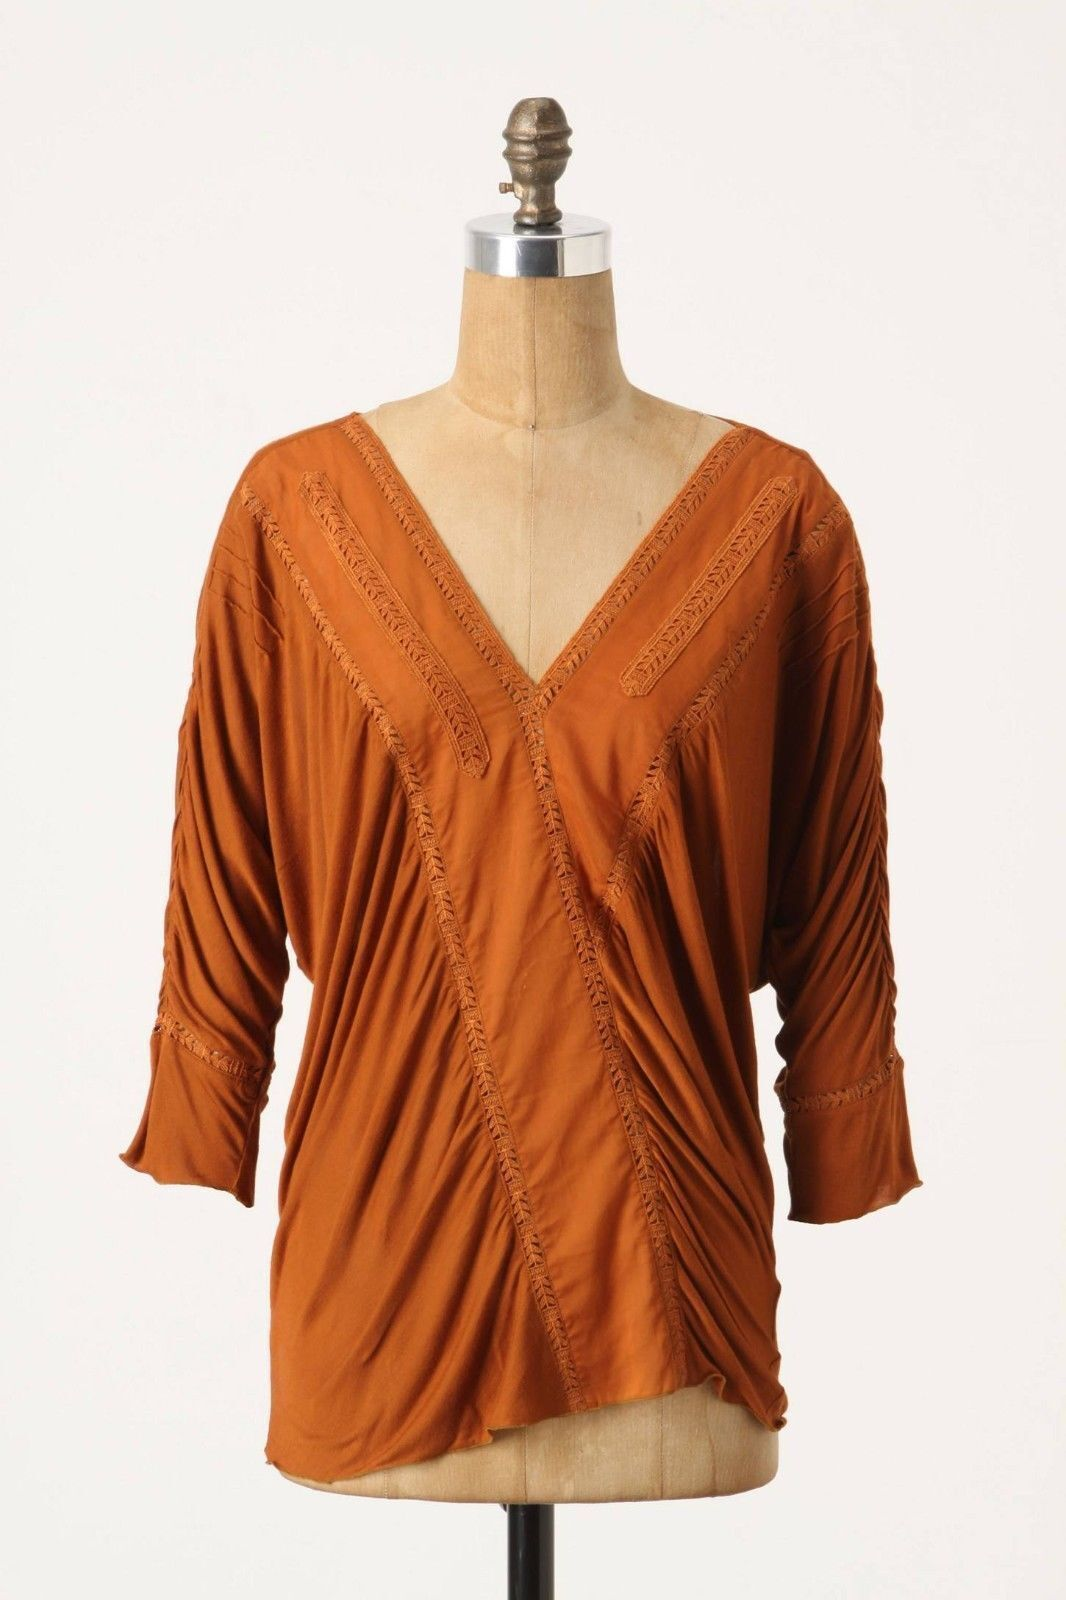 NWOT ANTHROPOLOGIE PUMPKIN LEAFY CROSSING TEE TOP BLOUSE by TINY S